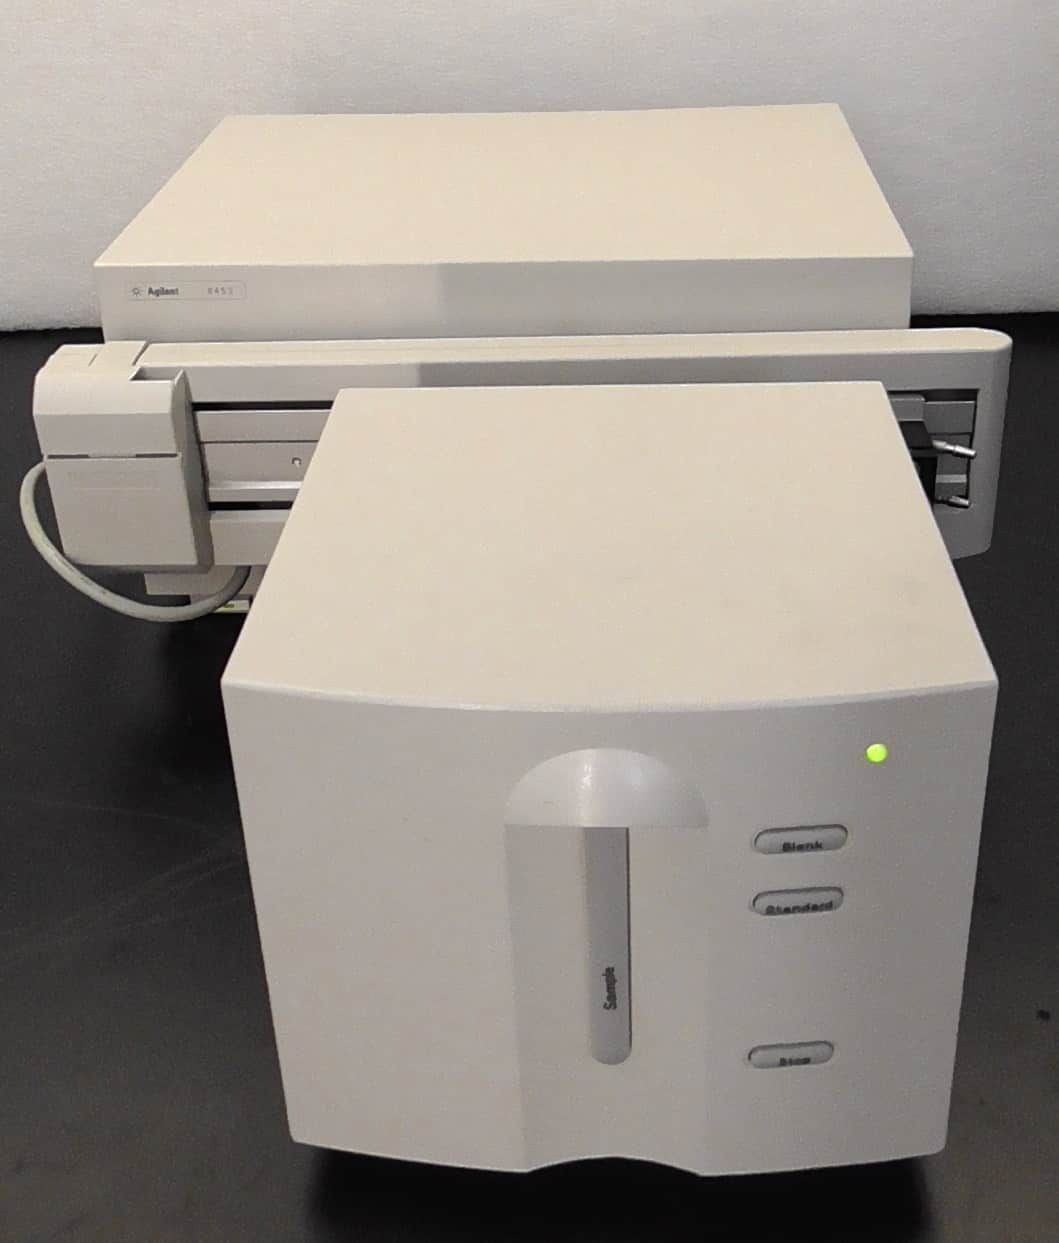 Agilent 8453 UV Vis Spectrophotometer with 8 Position Multicell Transport, Windows 7 PC, Keybaord and Mouse